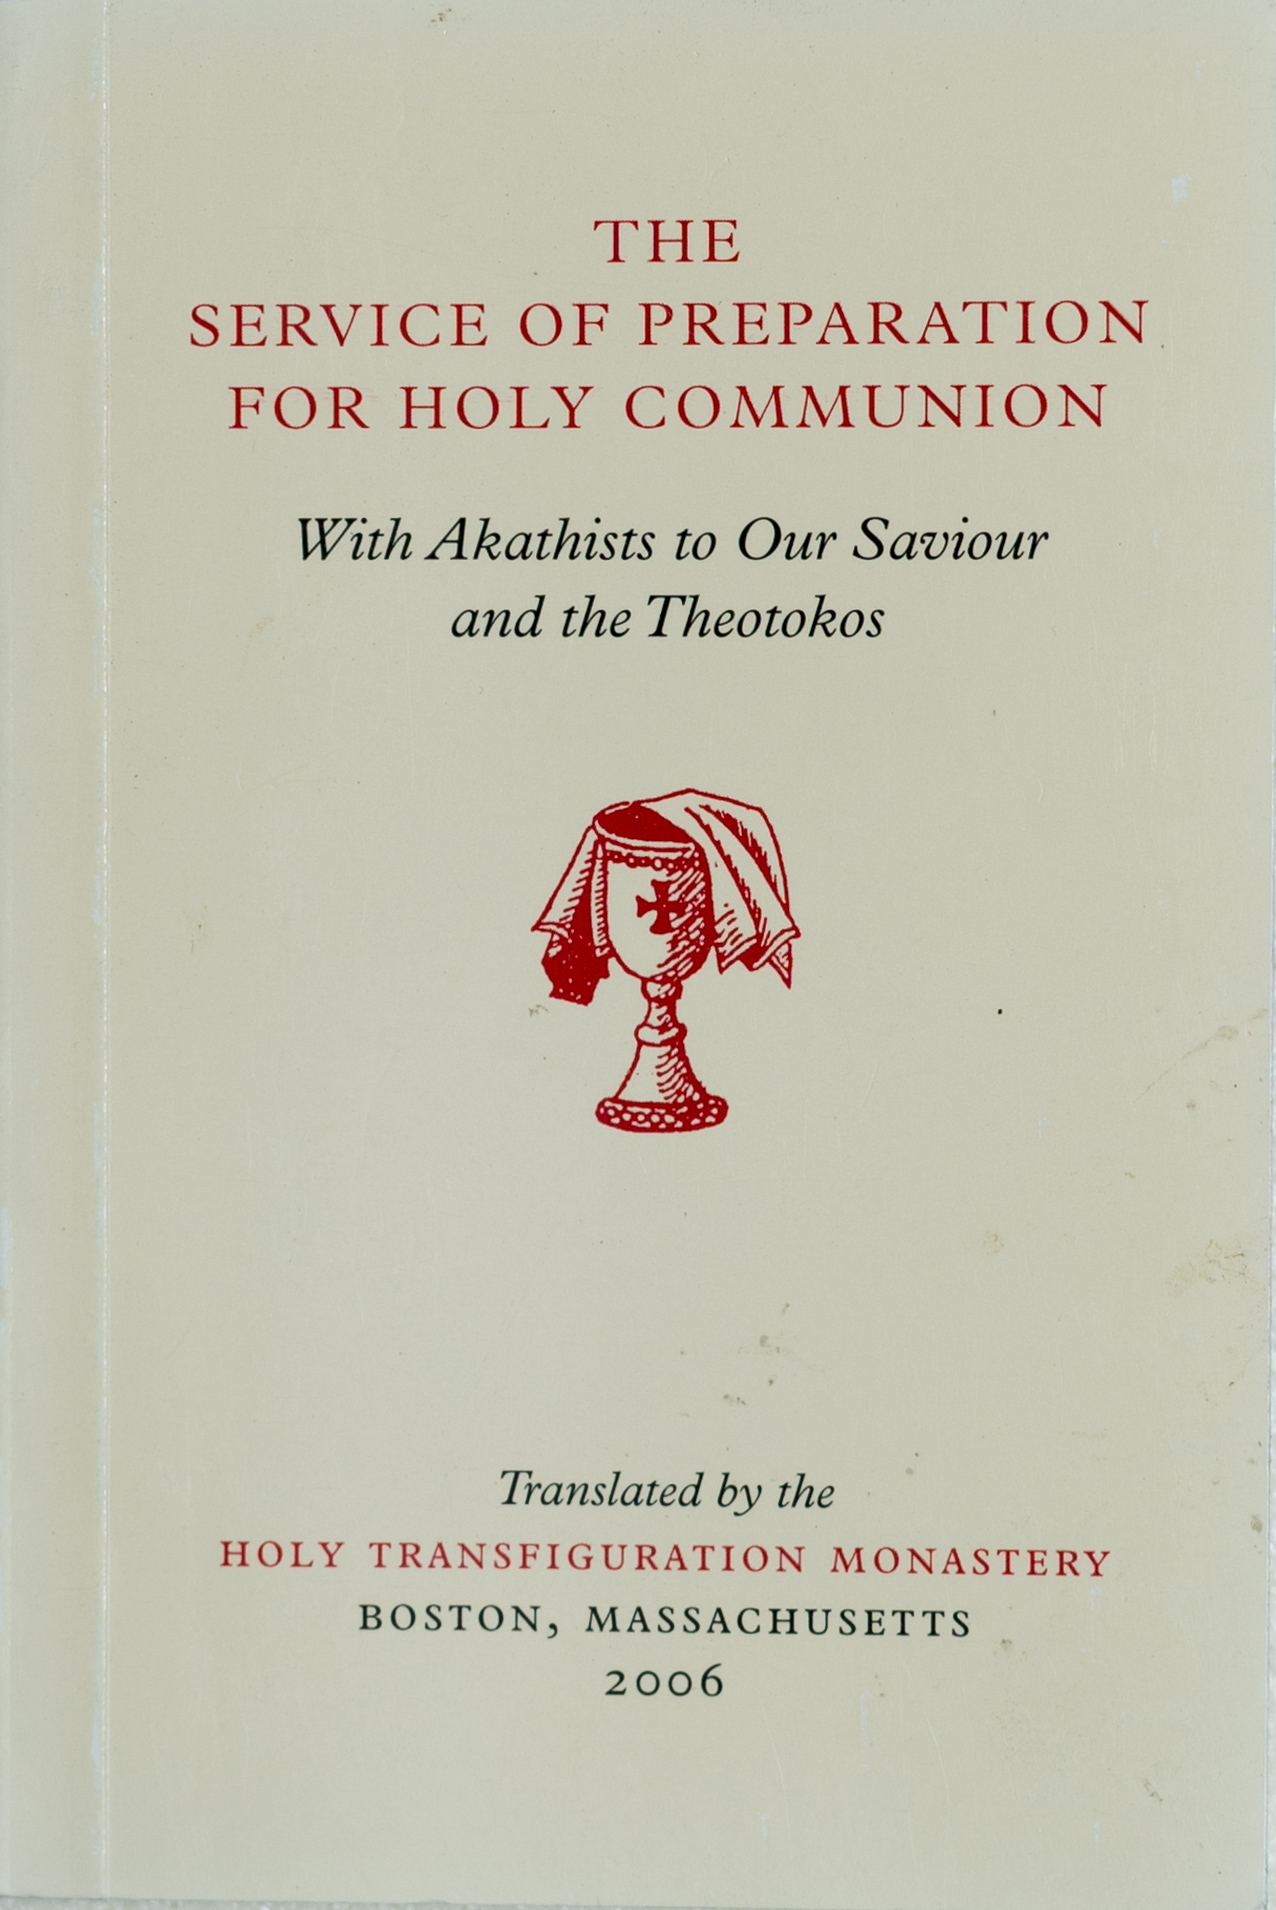 The Service of Preparation for Holy Communion